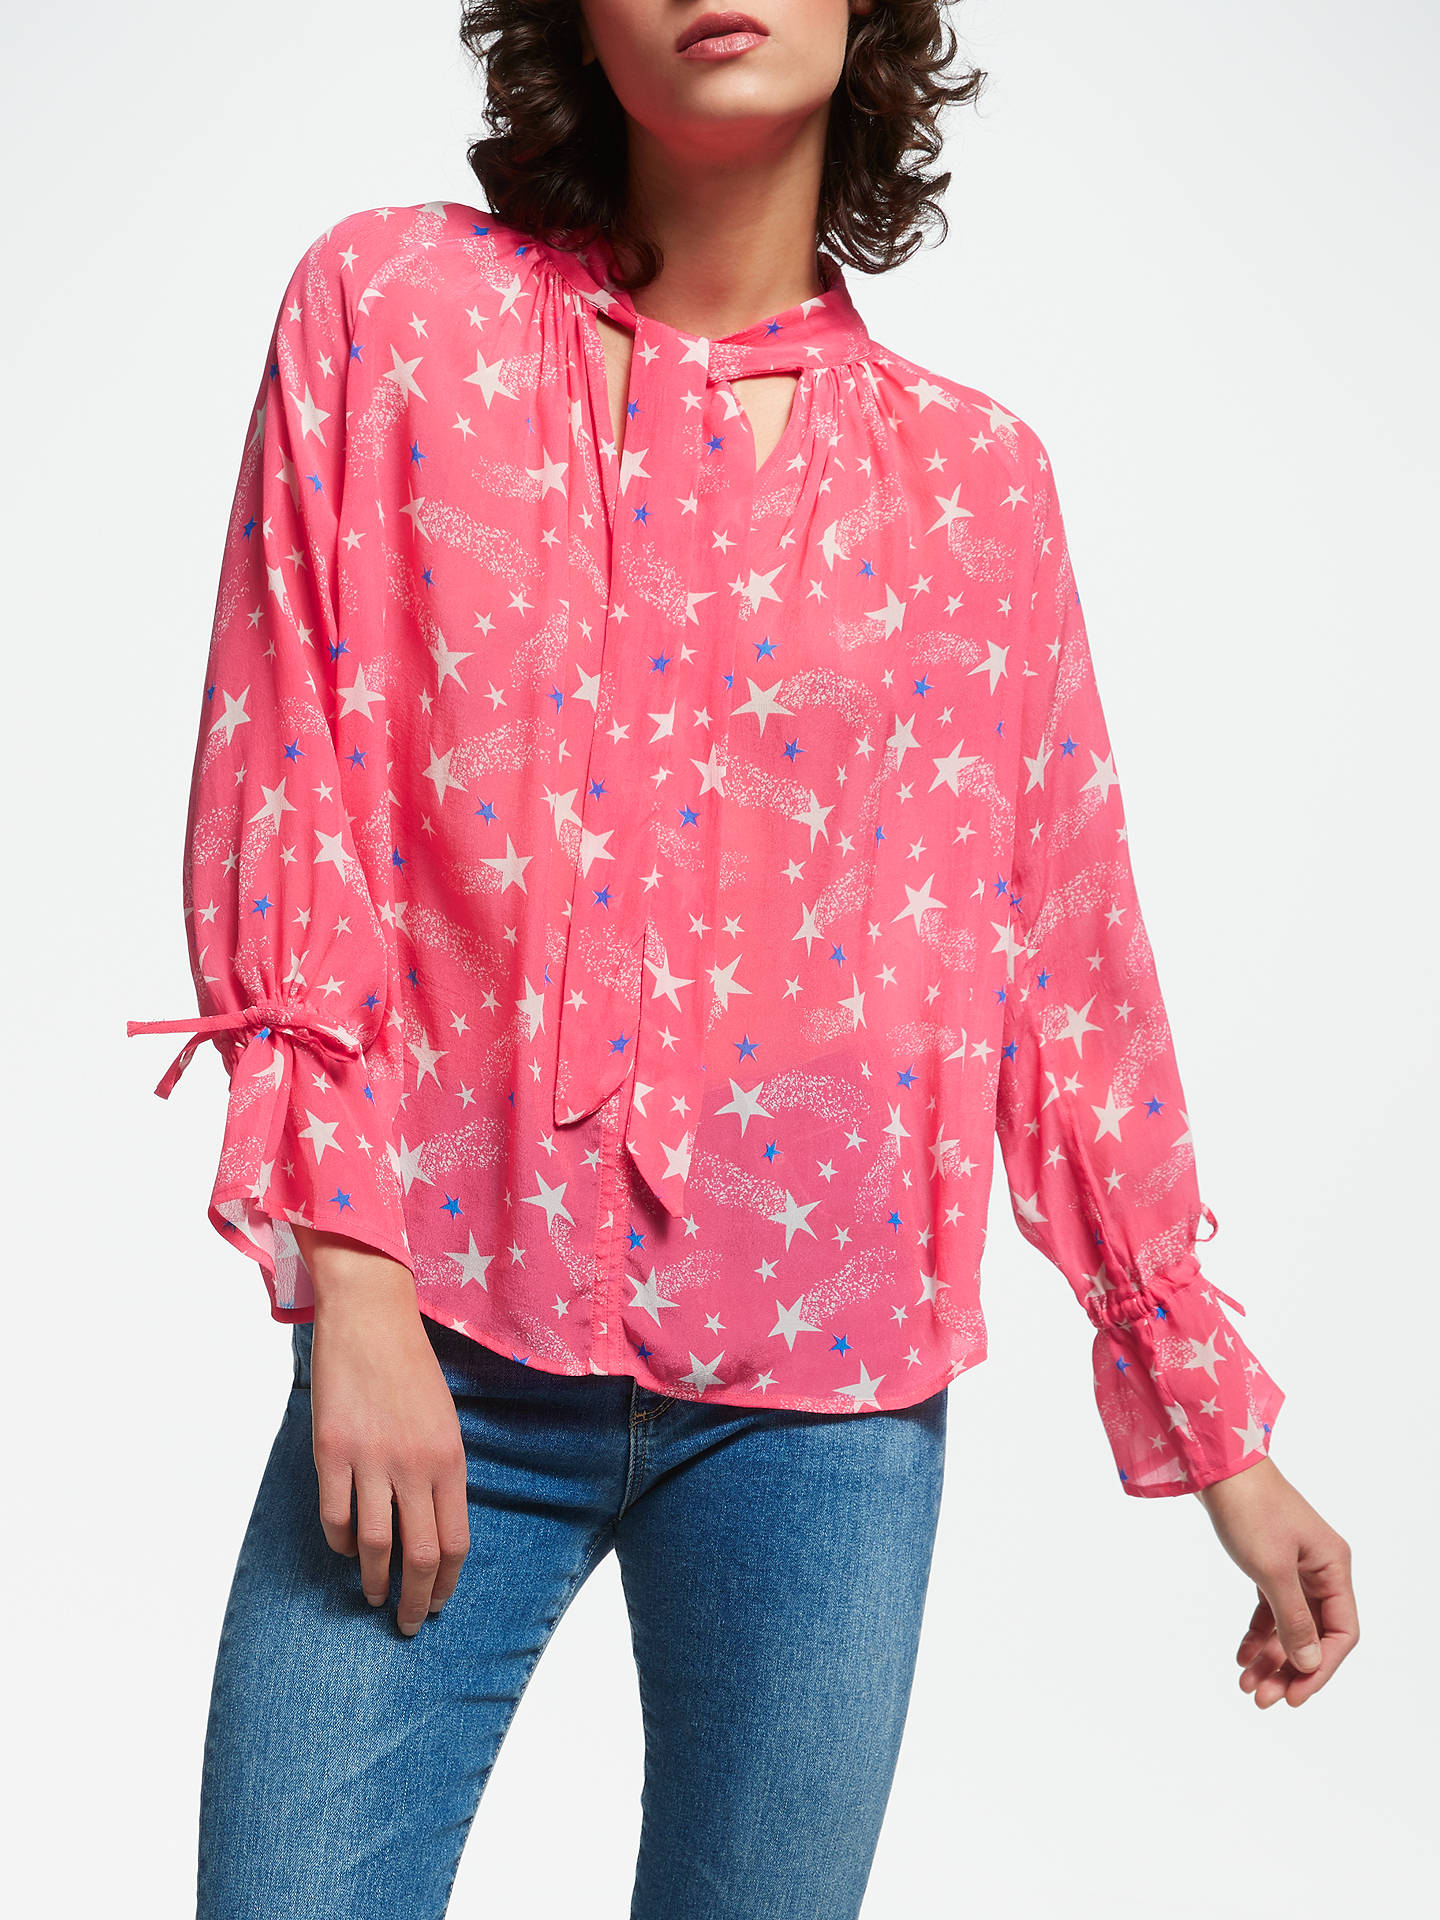 dff07a0abc7037 Buy Pyrus Anais Shooting Star Print Blouse, Pink, XS Online at  johnlewis.com ...